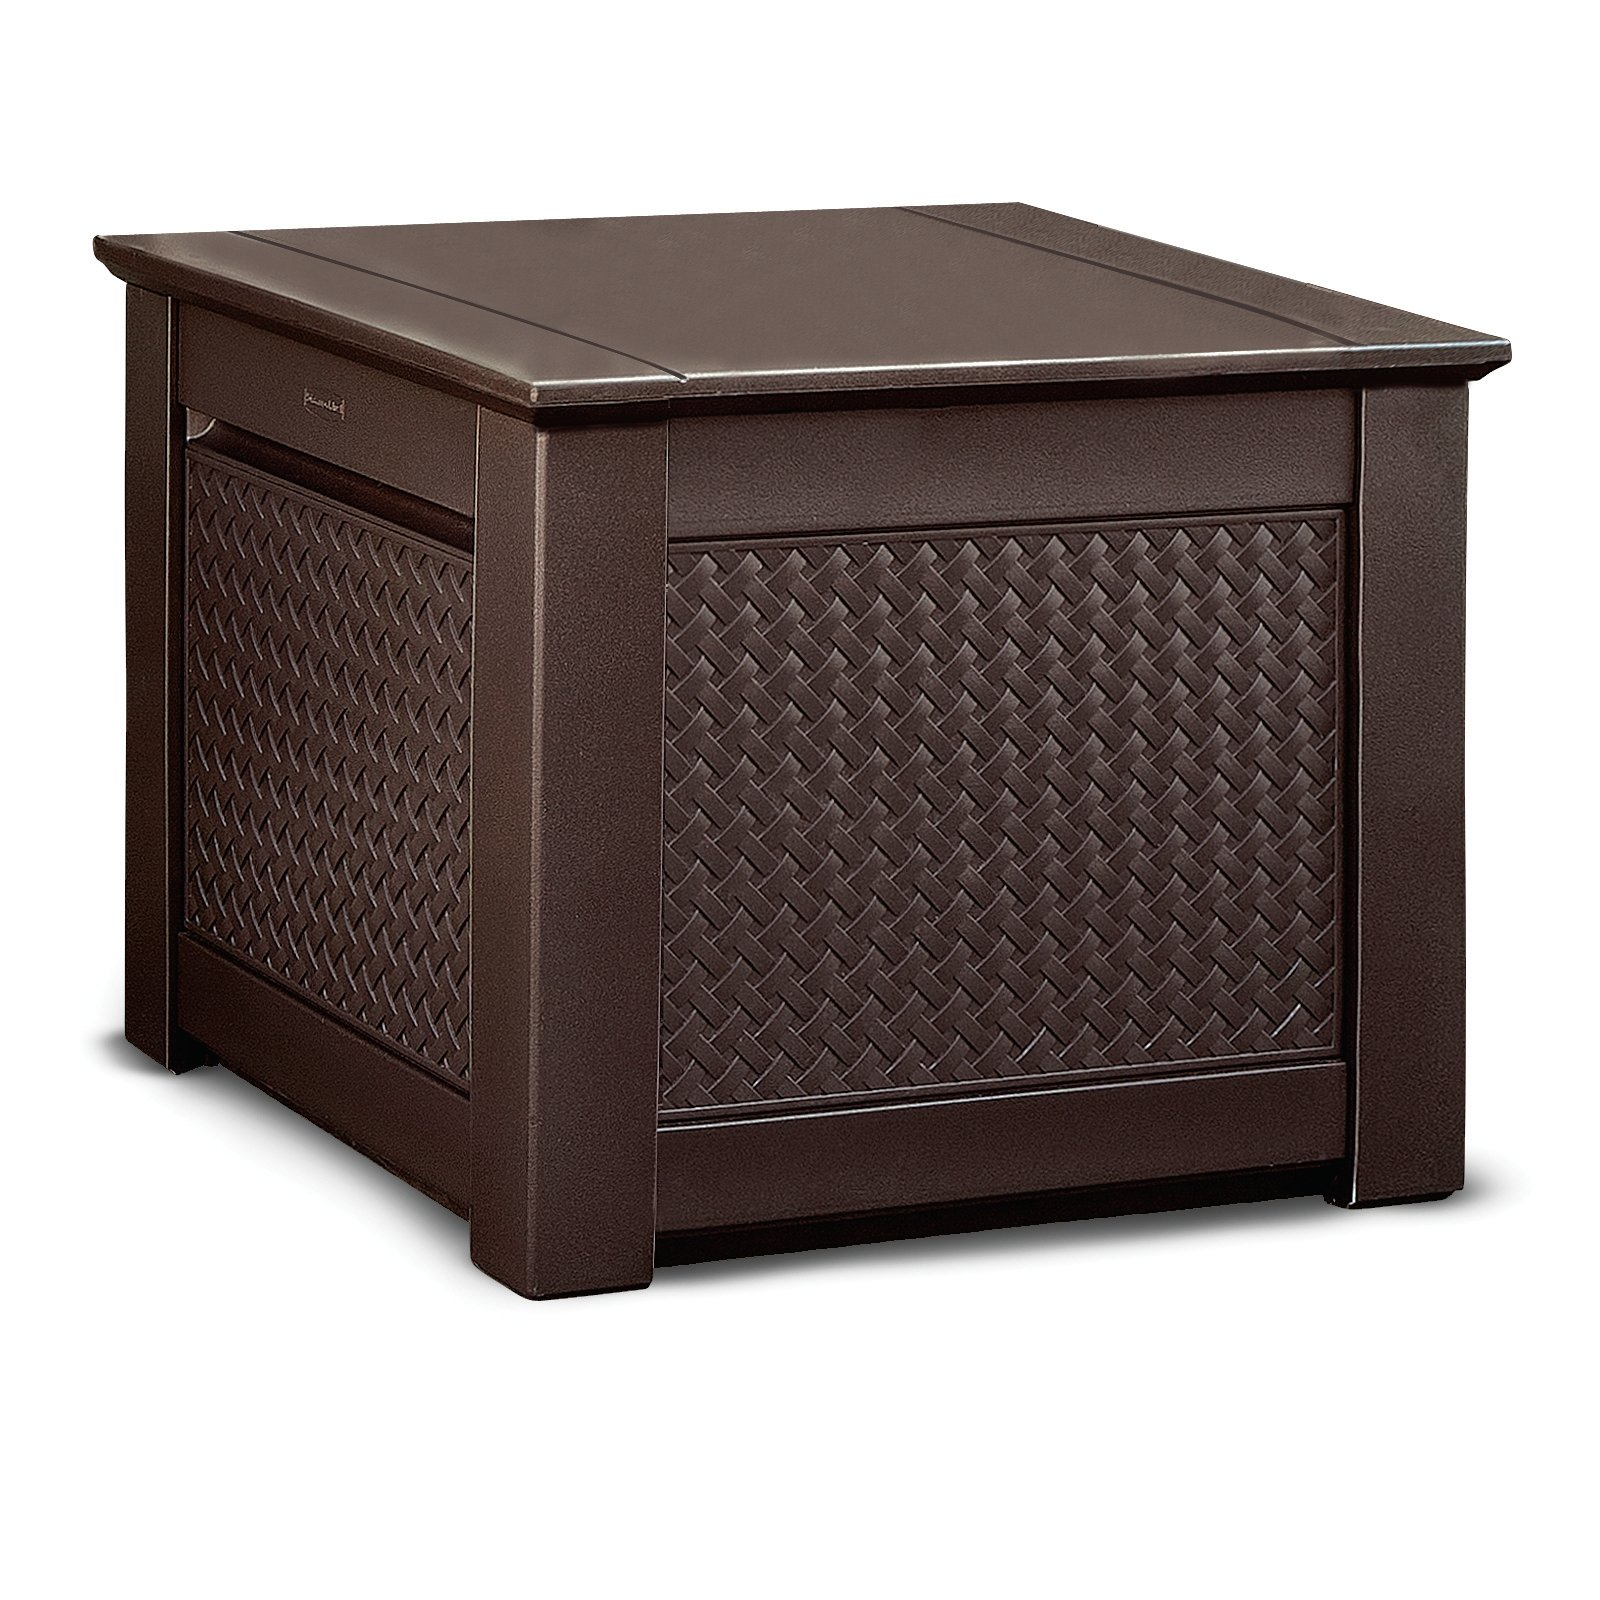 Rubbermaid Patio Chic Outdoor Storage Cube Dark Teak